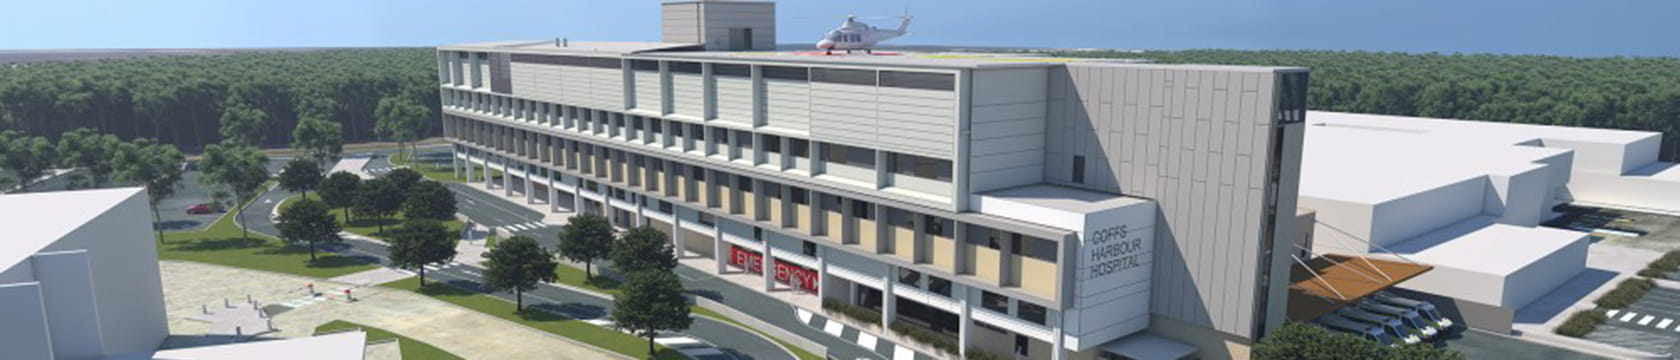 Coffs Harbour Hospital expansion